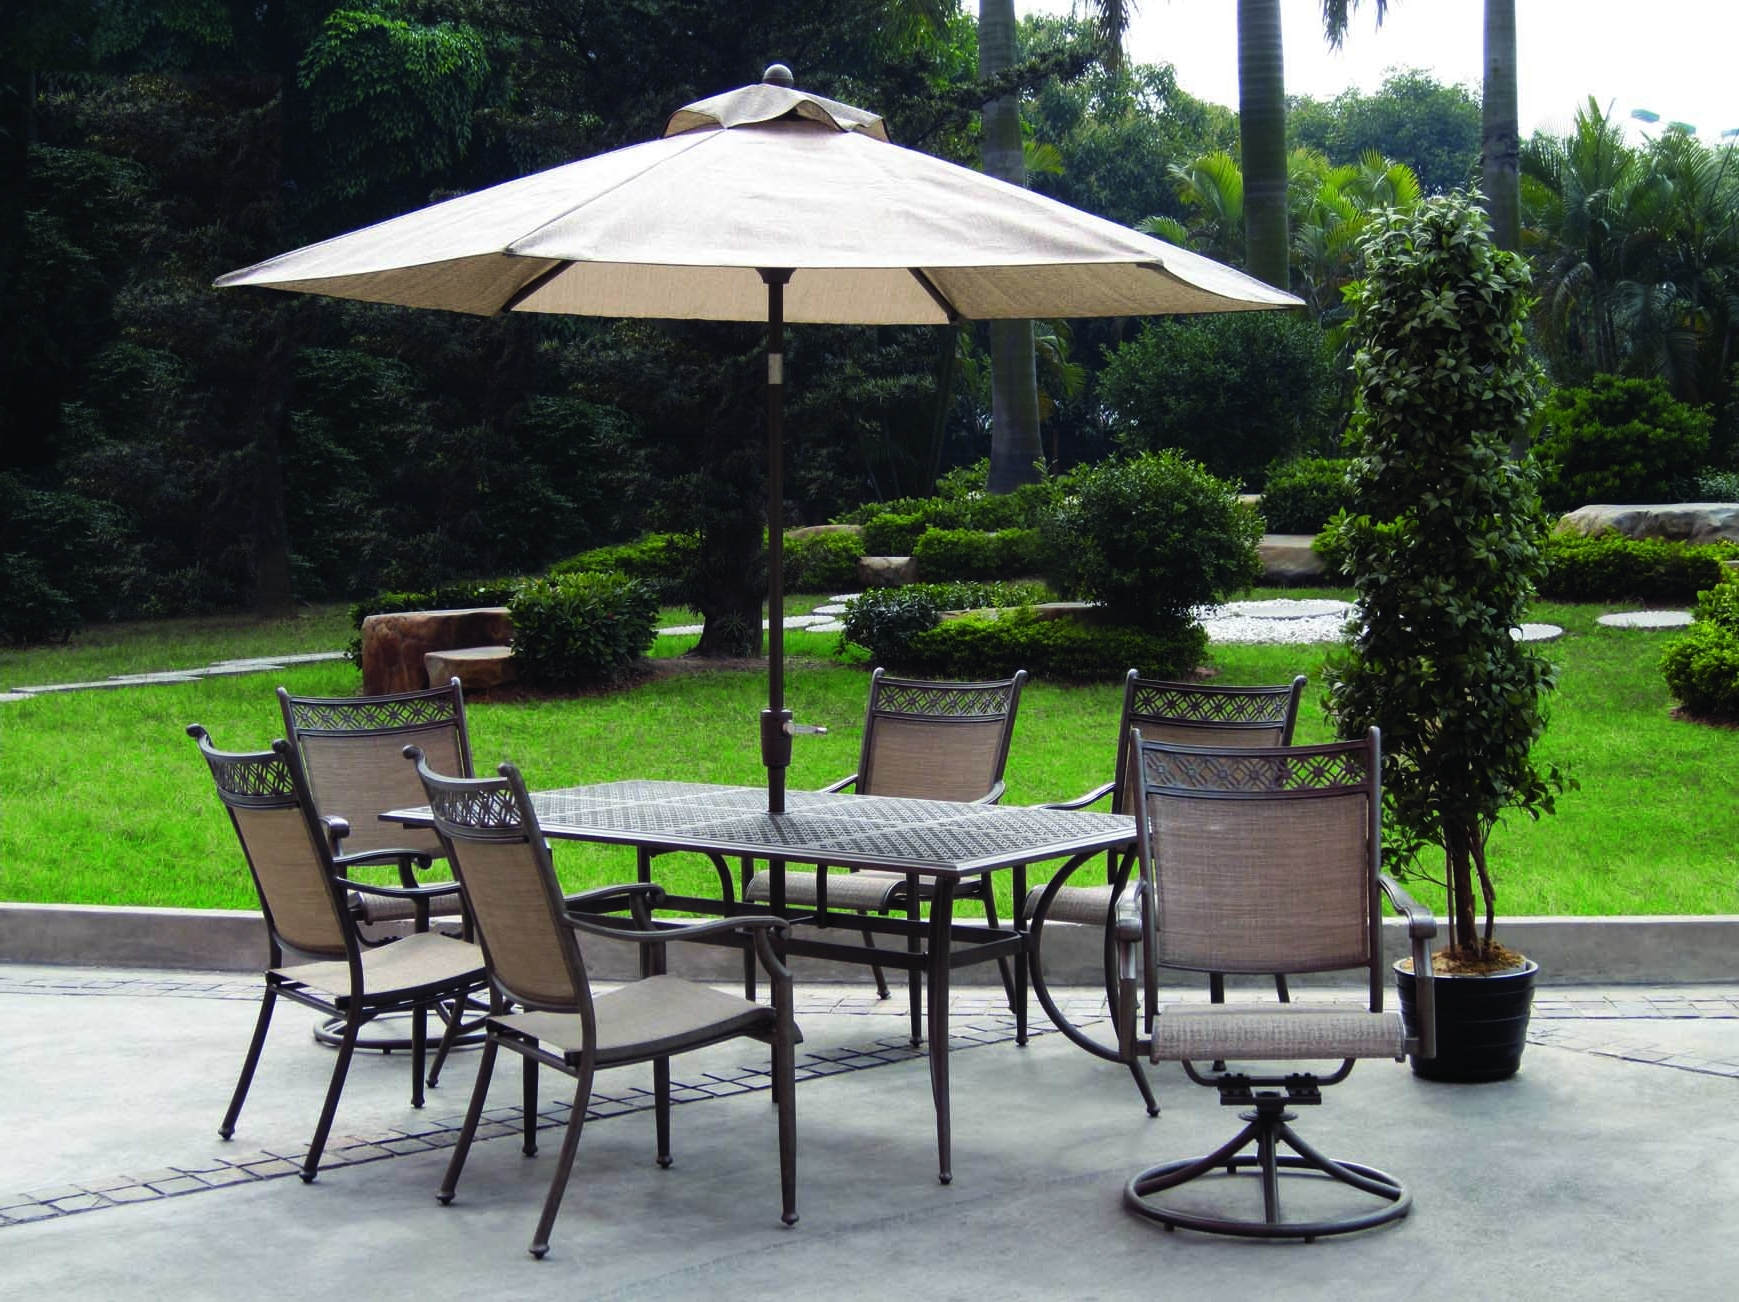 Most Recent Furniture: Snazzy Hampton Bay Outdoor Furniture Ideas — Hiredmd In Patio Furniture Sets With Umbrellas (View 20 of 20)